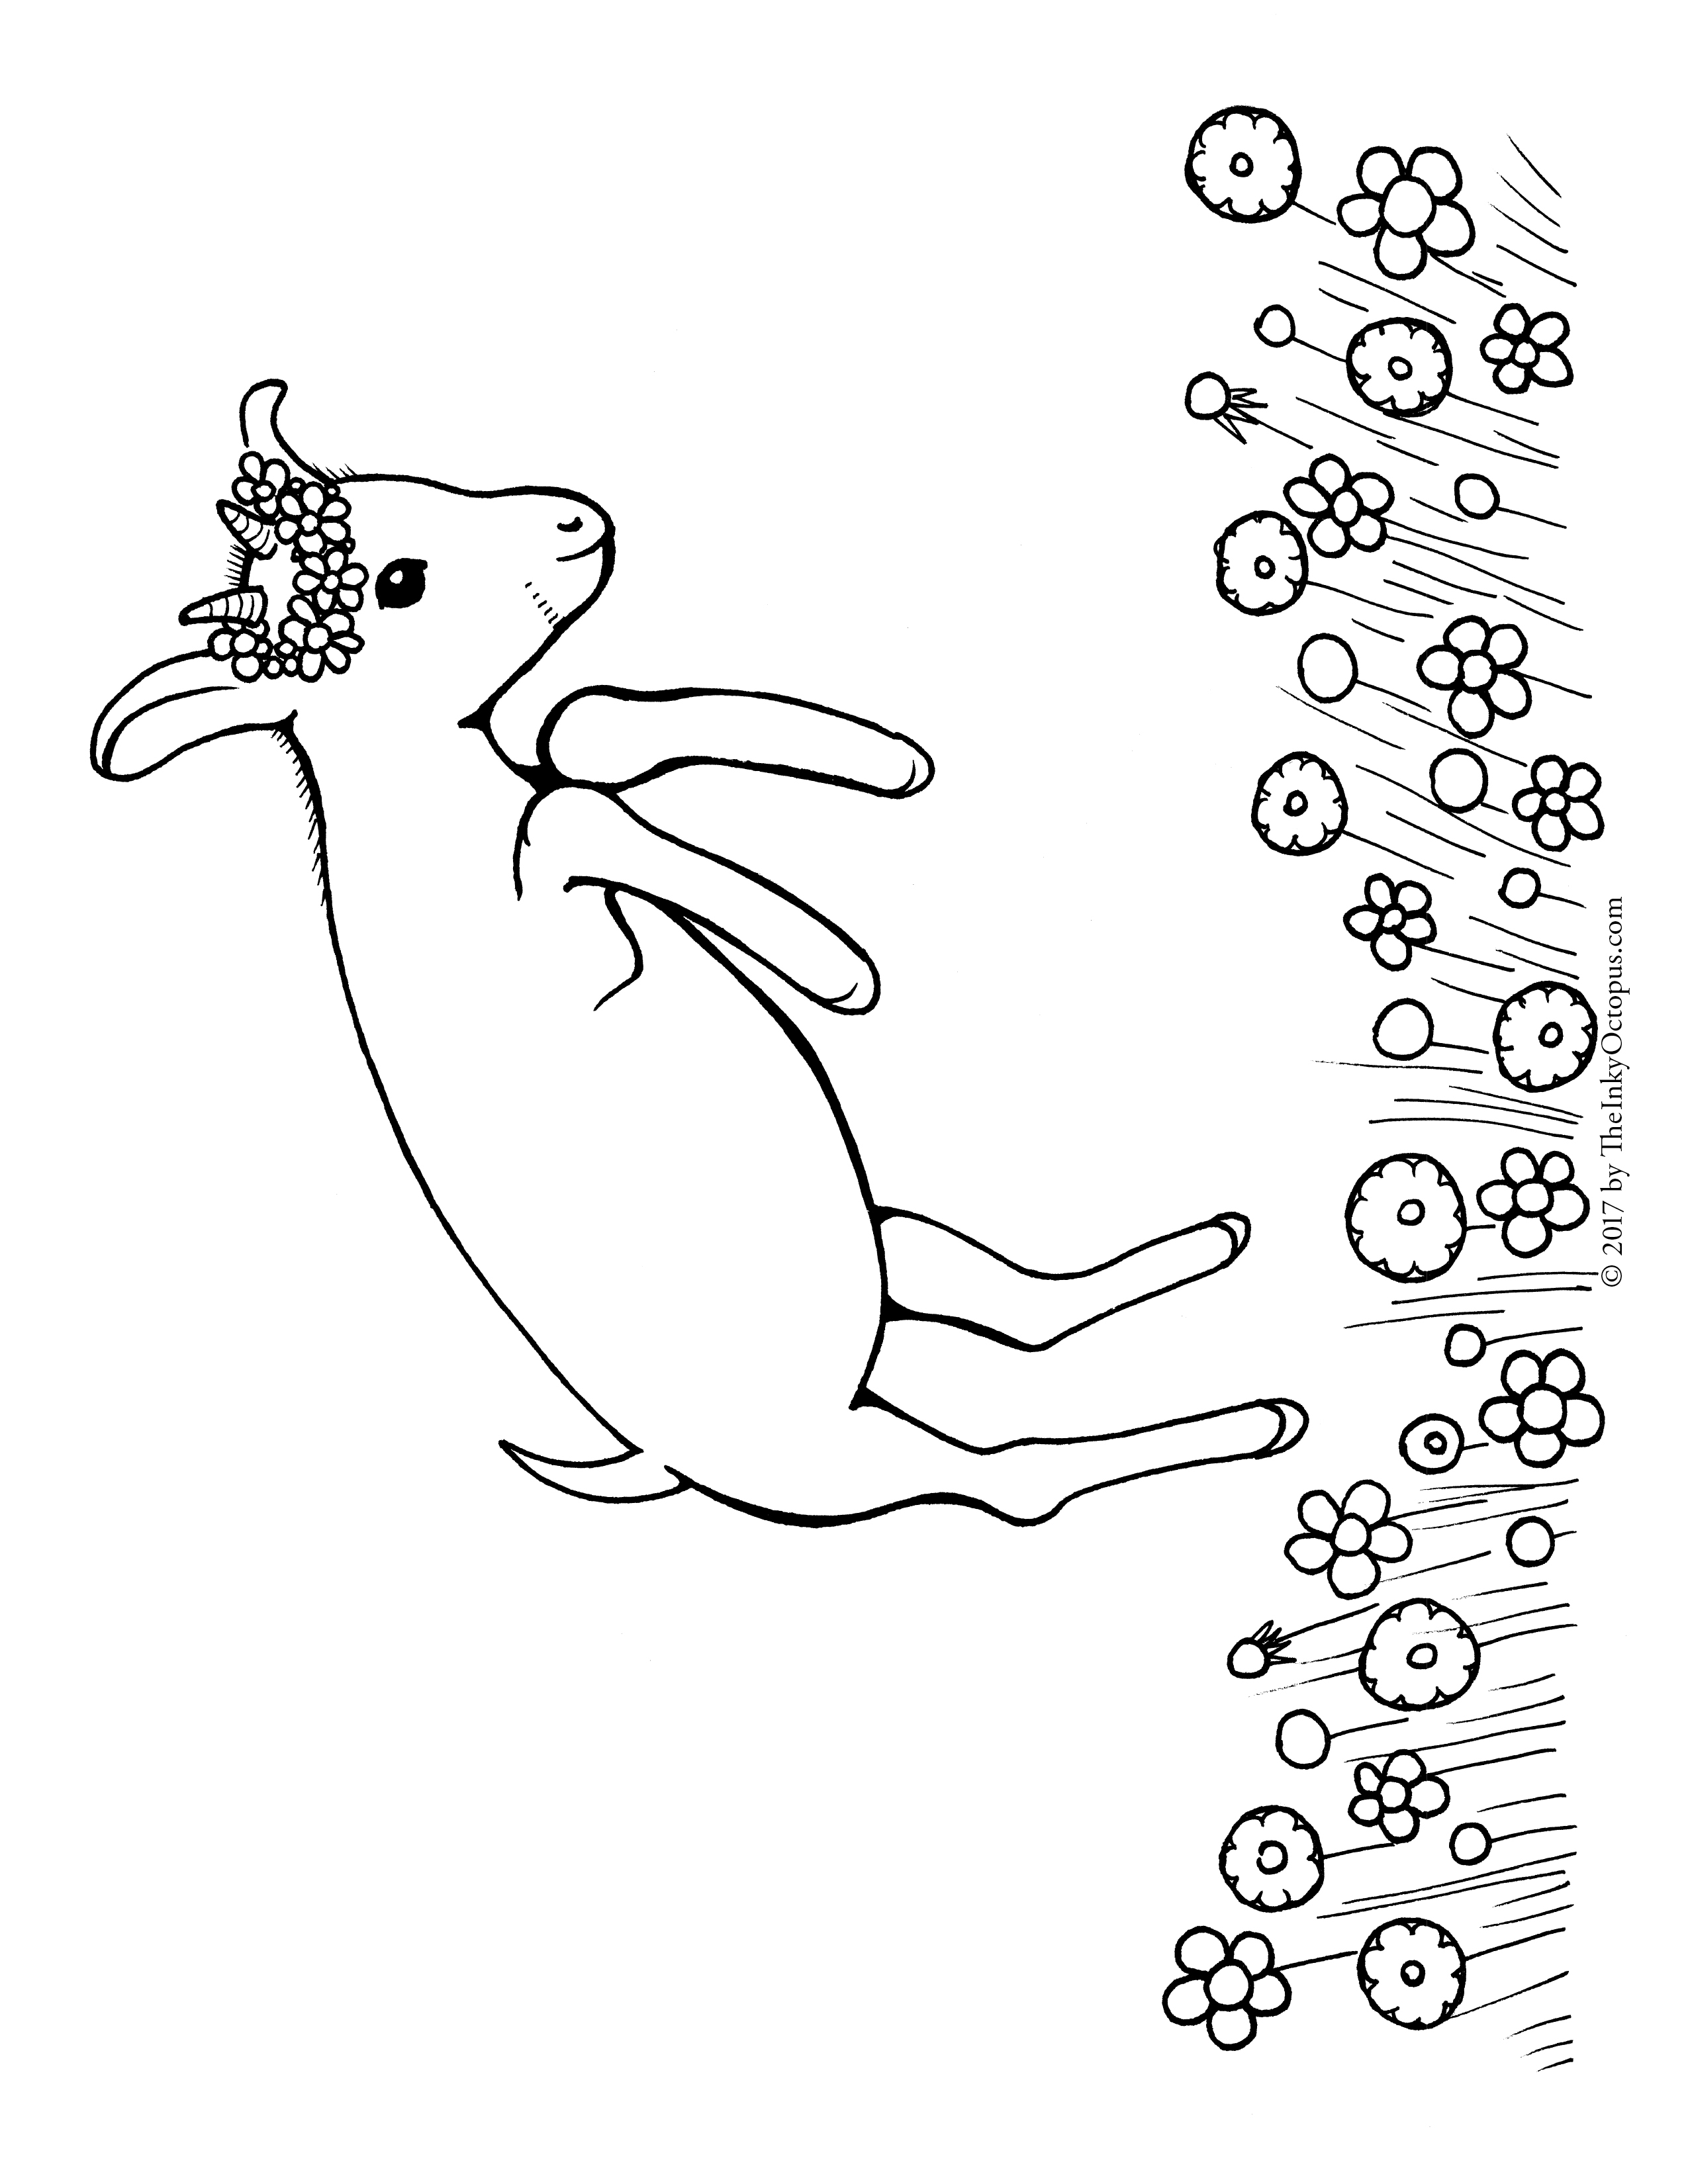 Free Printable Goat Coloring Page The Inky Octopus